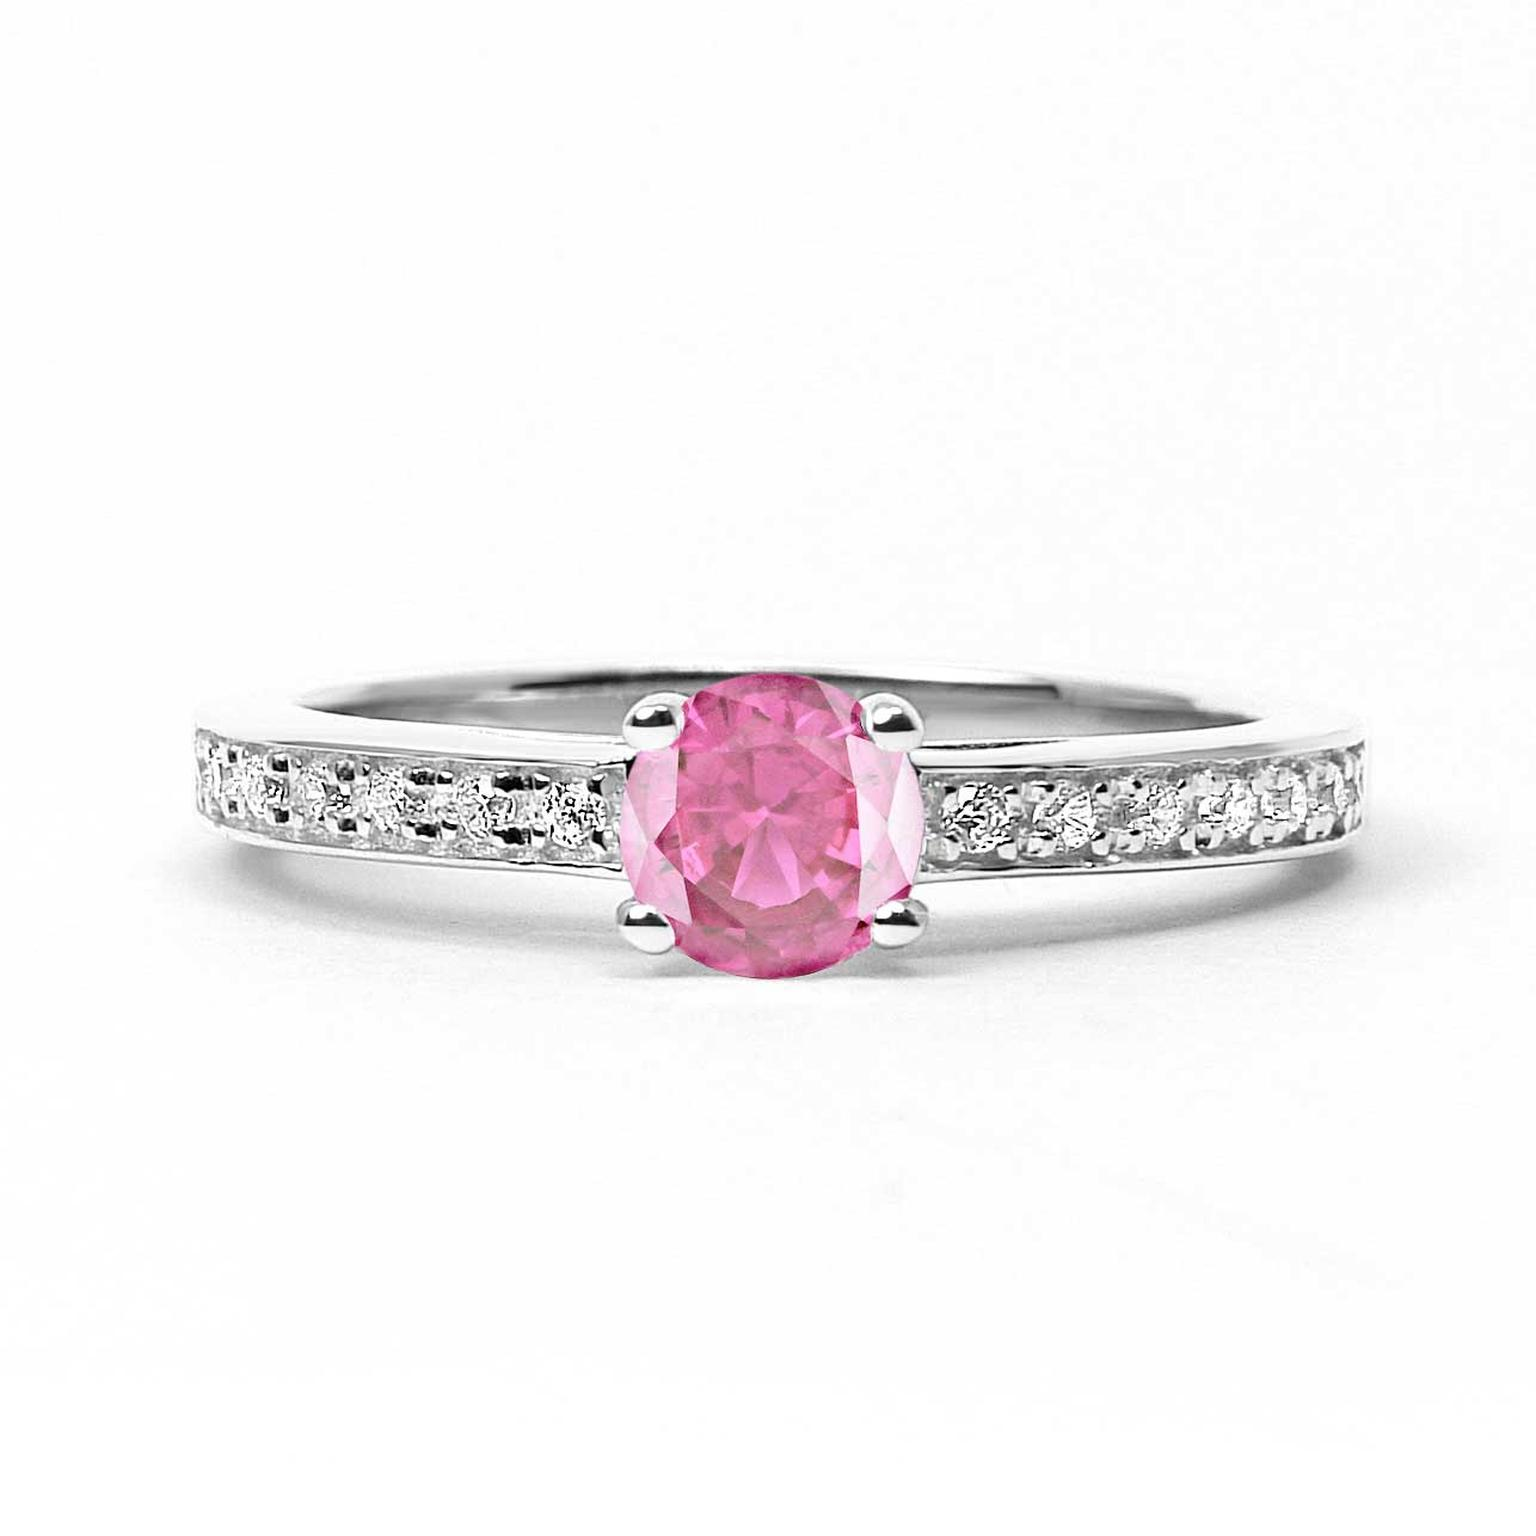 Arabel Lebrusan Athena ethical pink sapphire engagement ring in Fairtrade gold